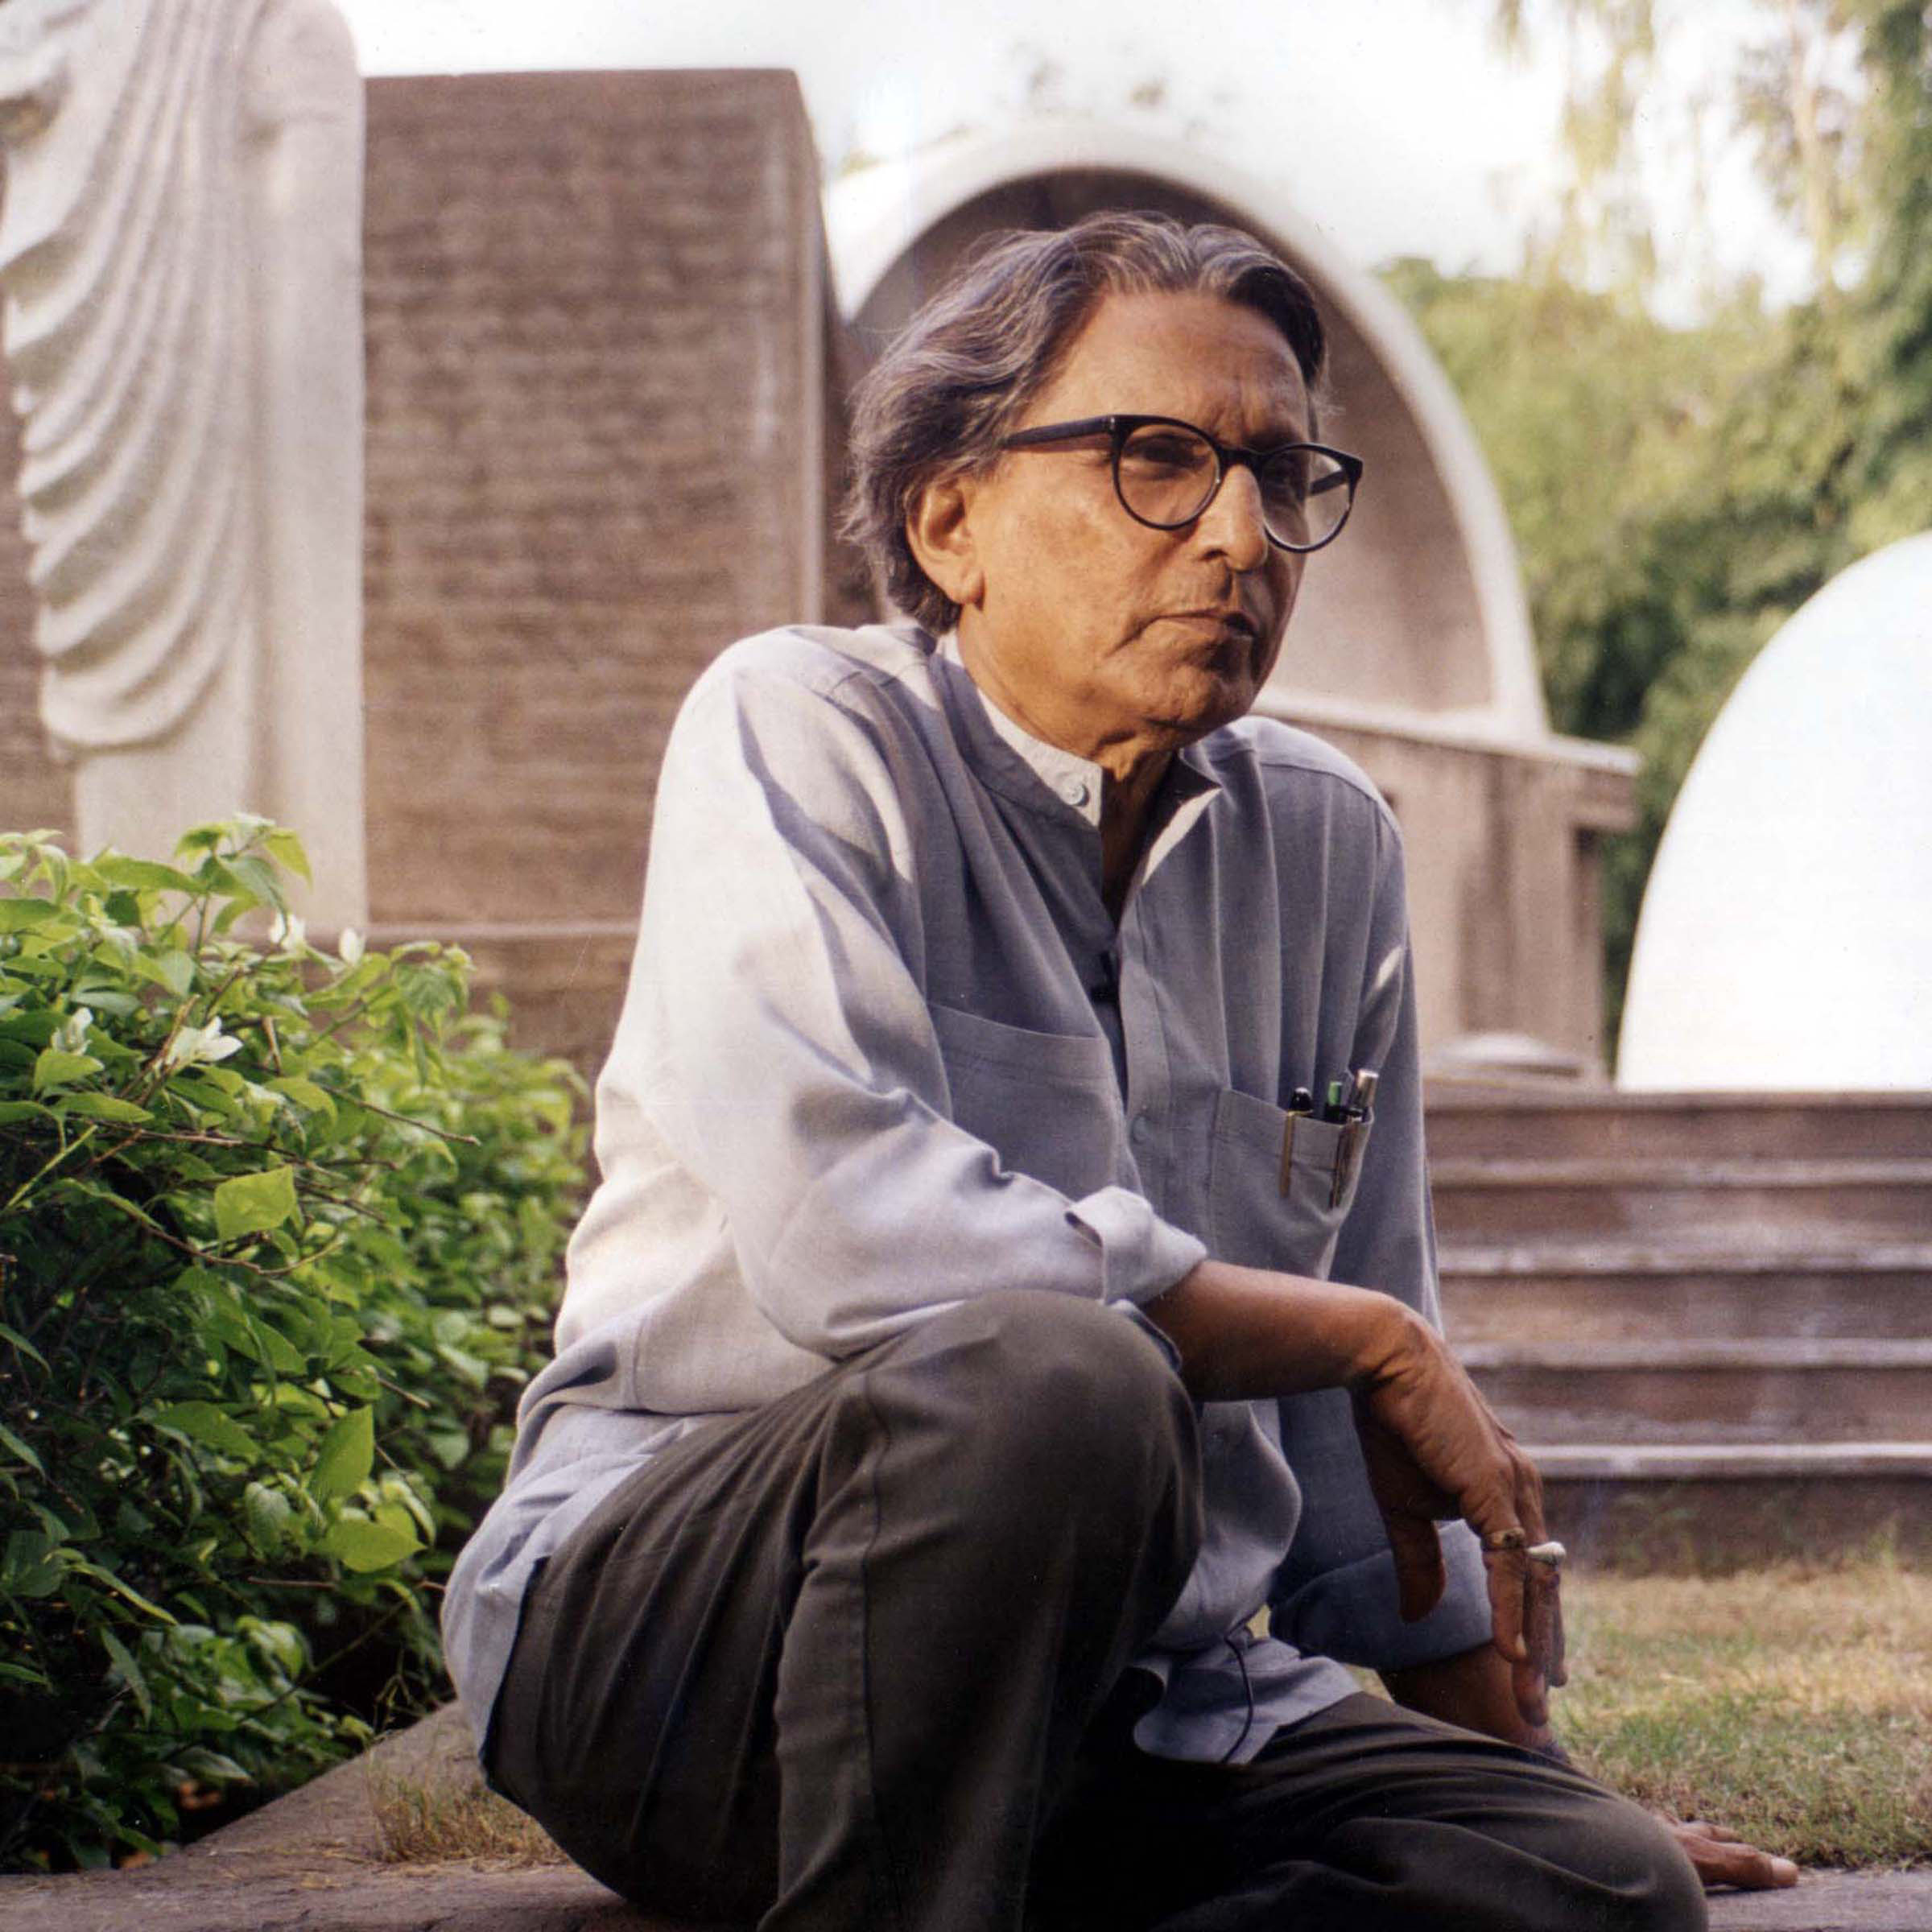 B V Doshi becomes the 45th Pritzker Prize Laureate and the first to hail from India - Sheet1